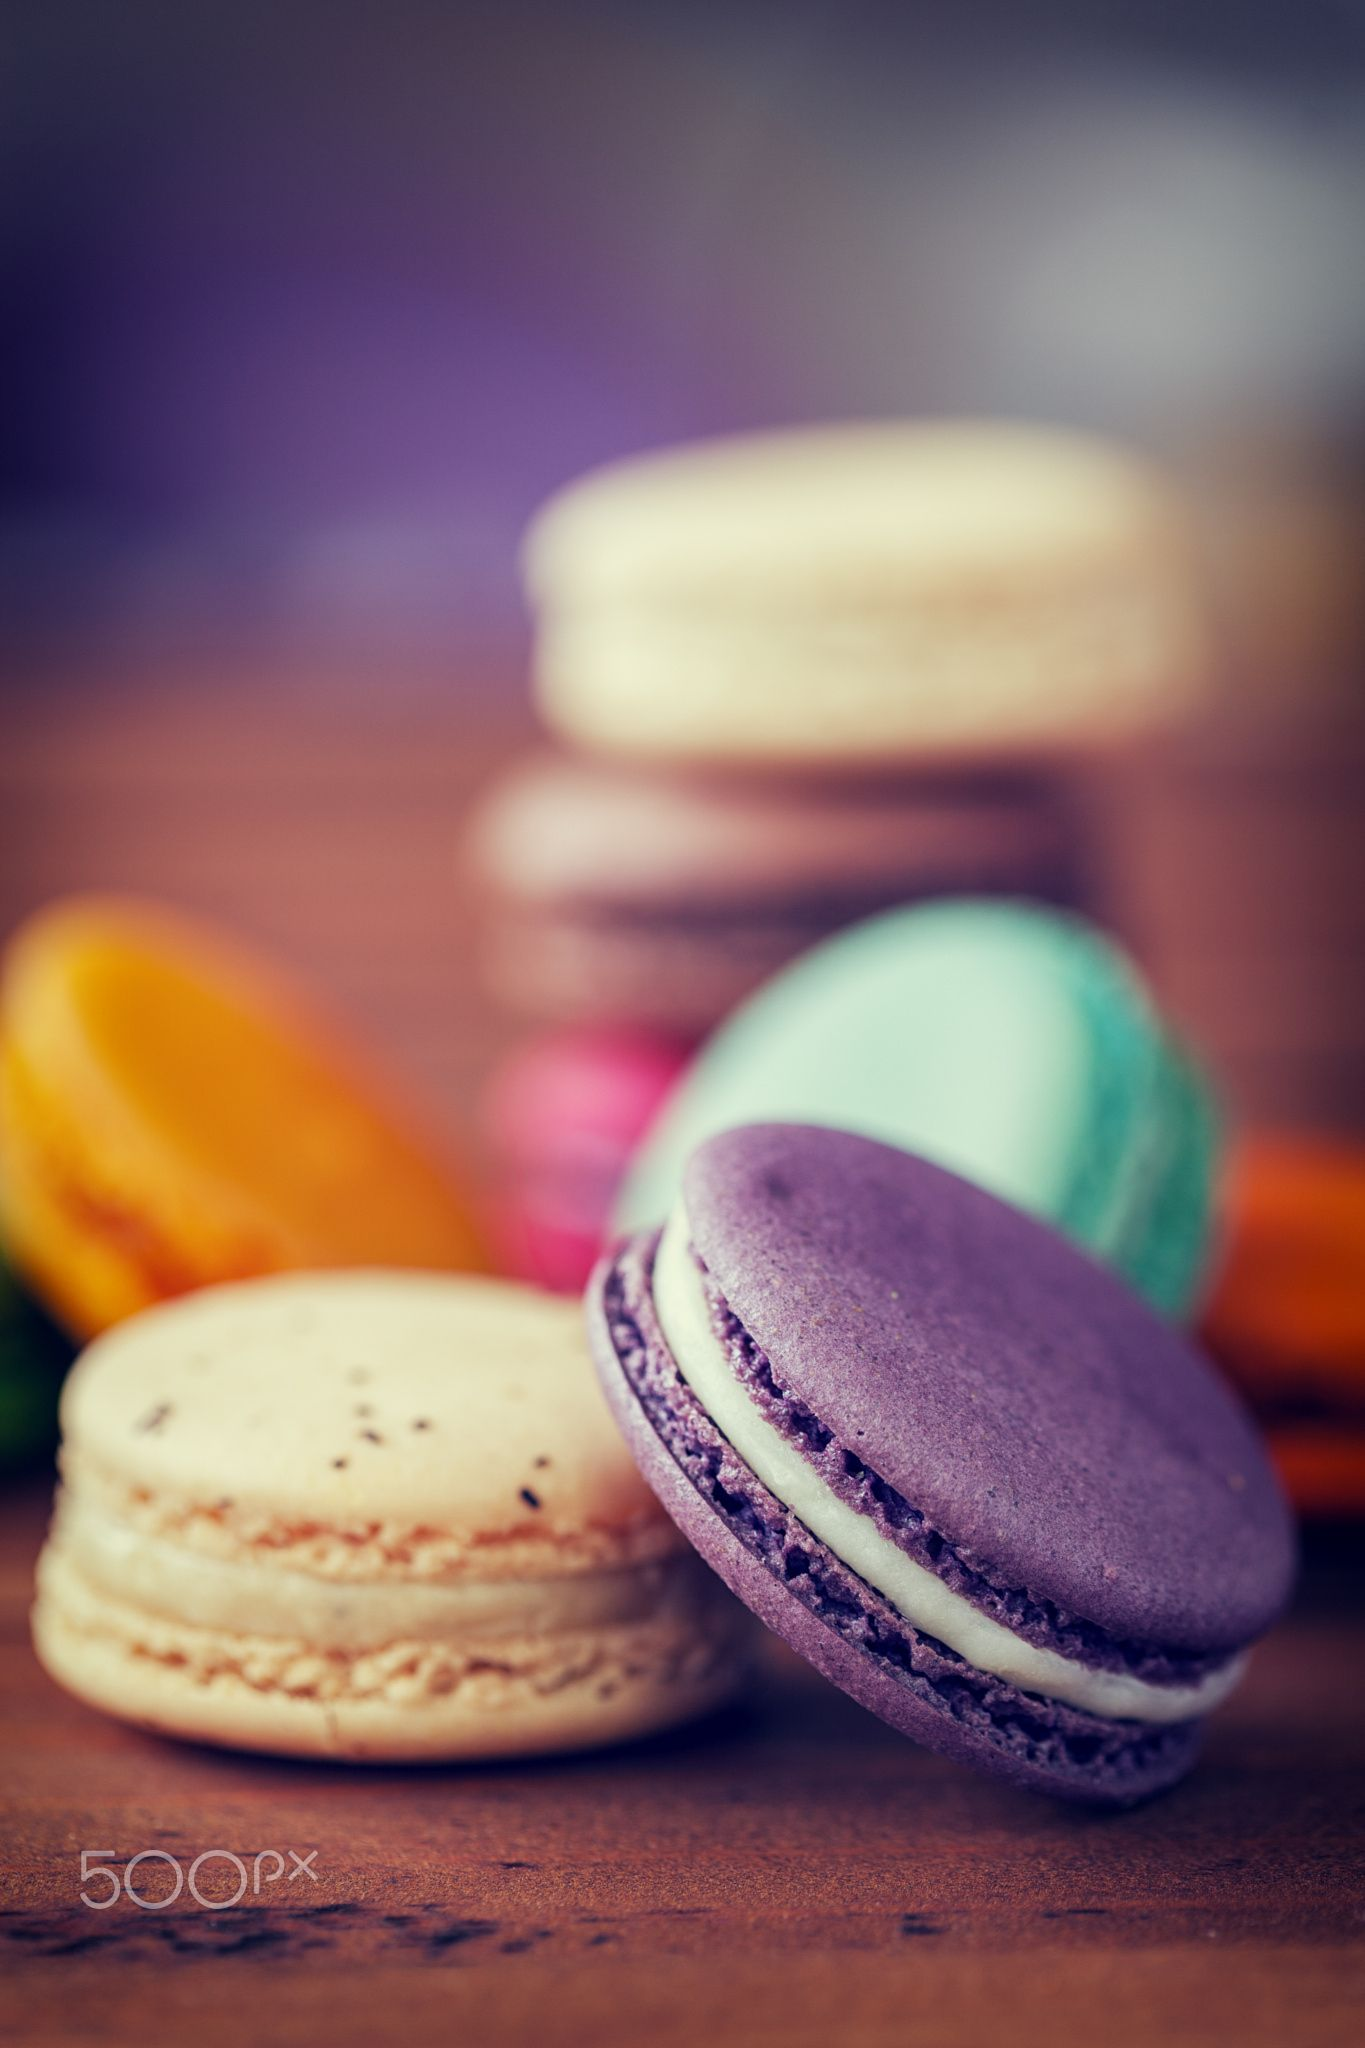 Sweet Tasty Colorful Macarons Delicious Sweet Colorful Macarons Macaron Wallpaper Colorful Macarons Macaroon Wallpaper